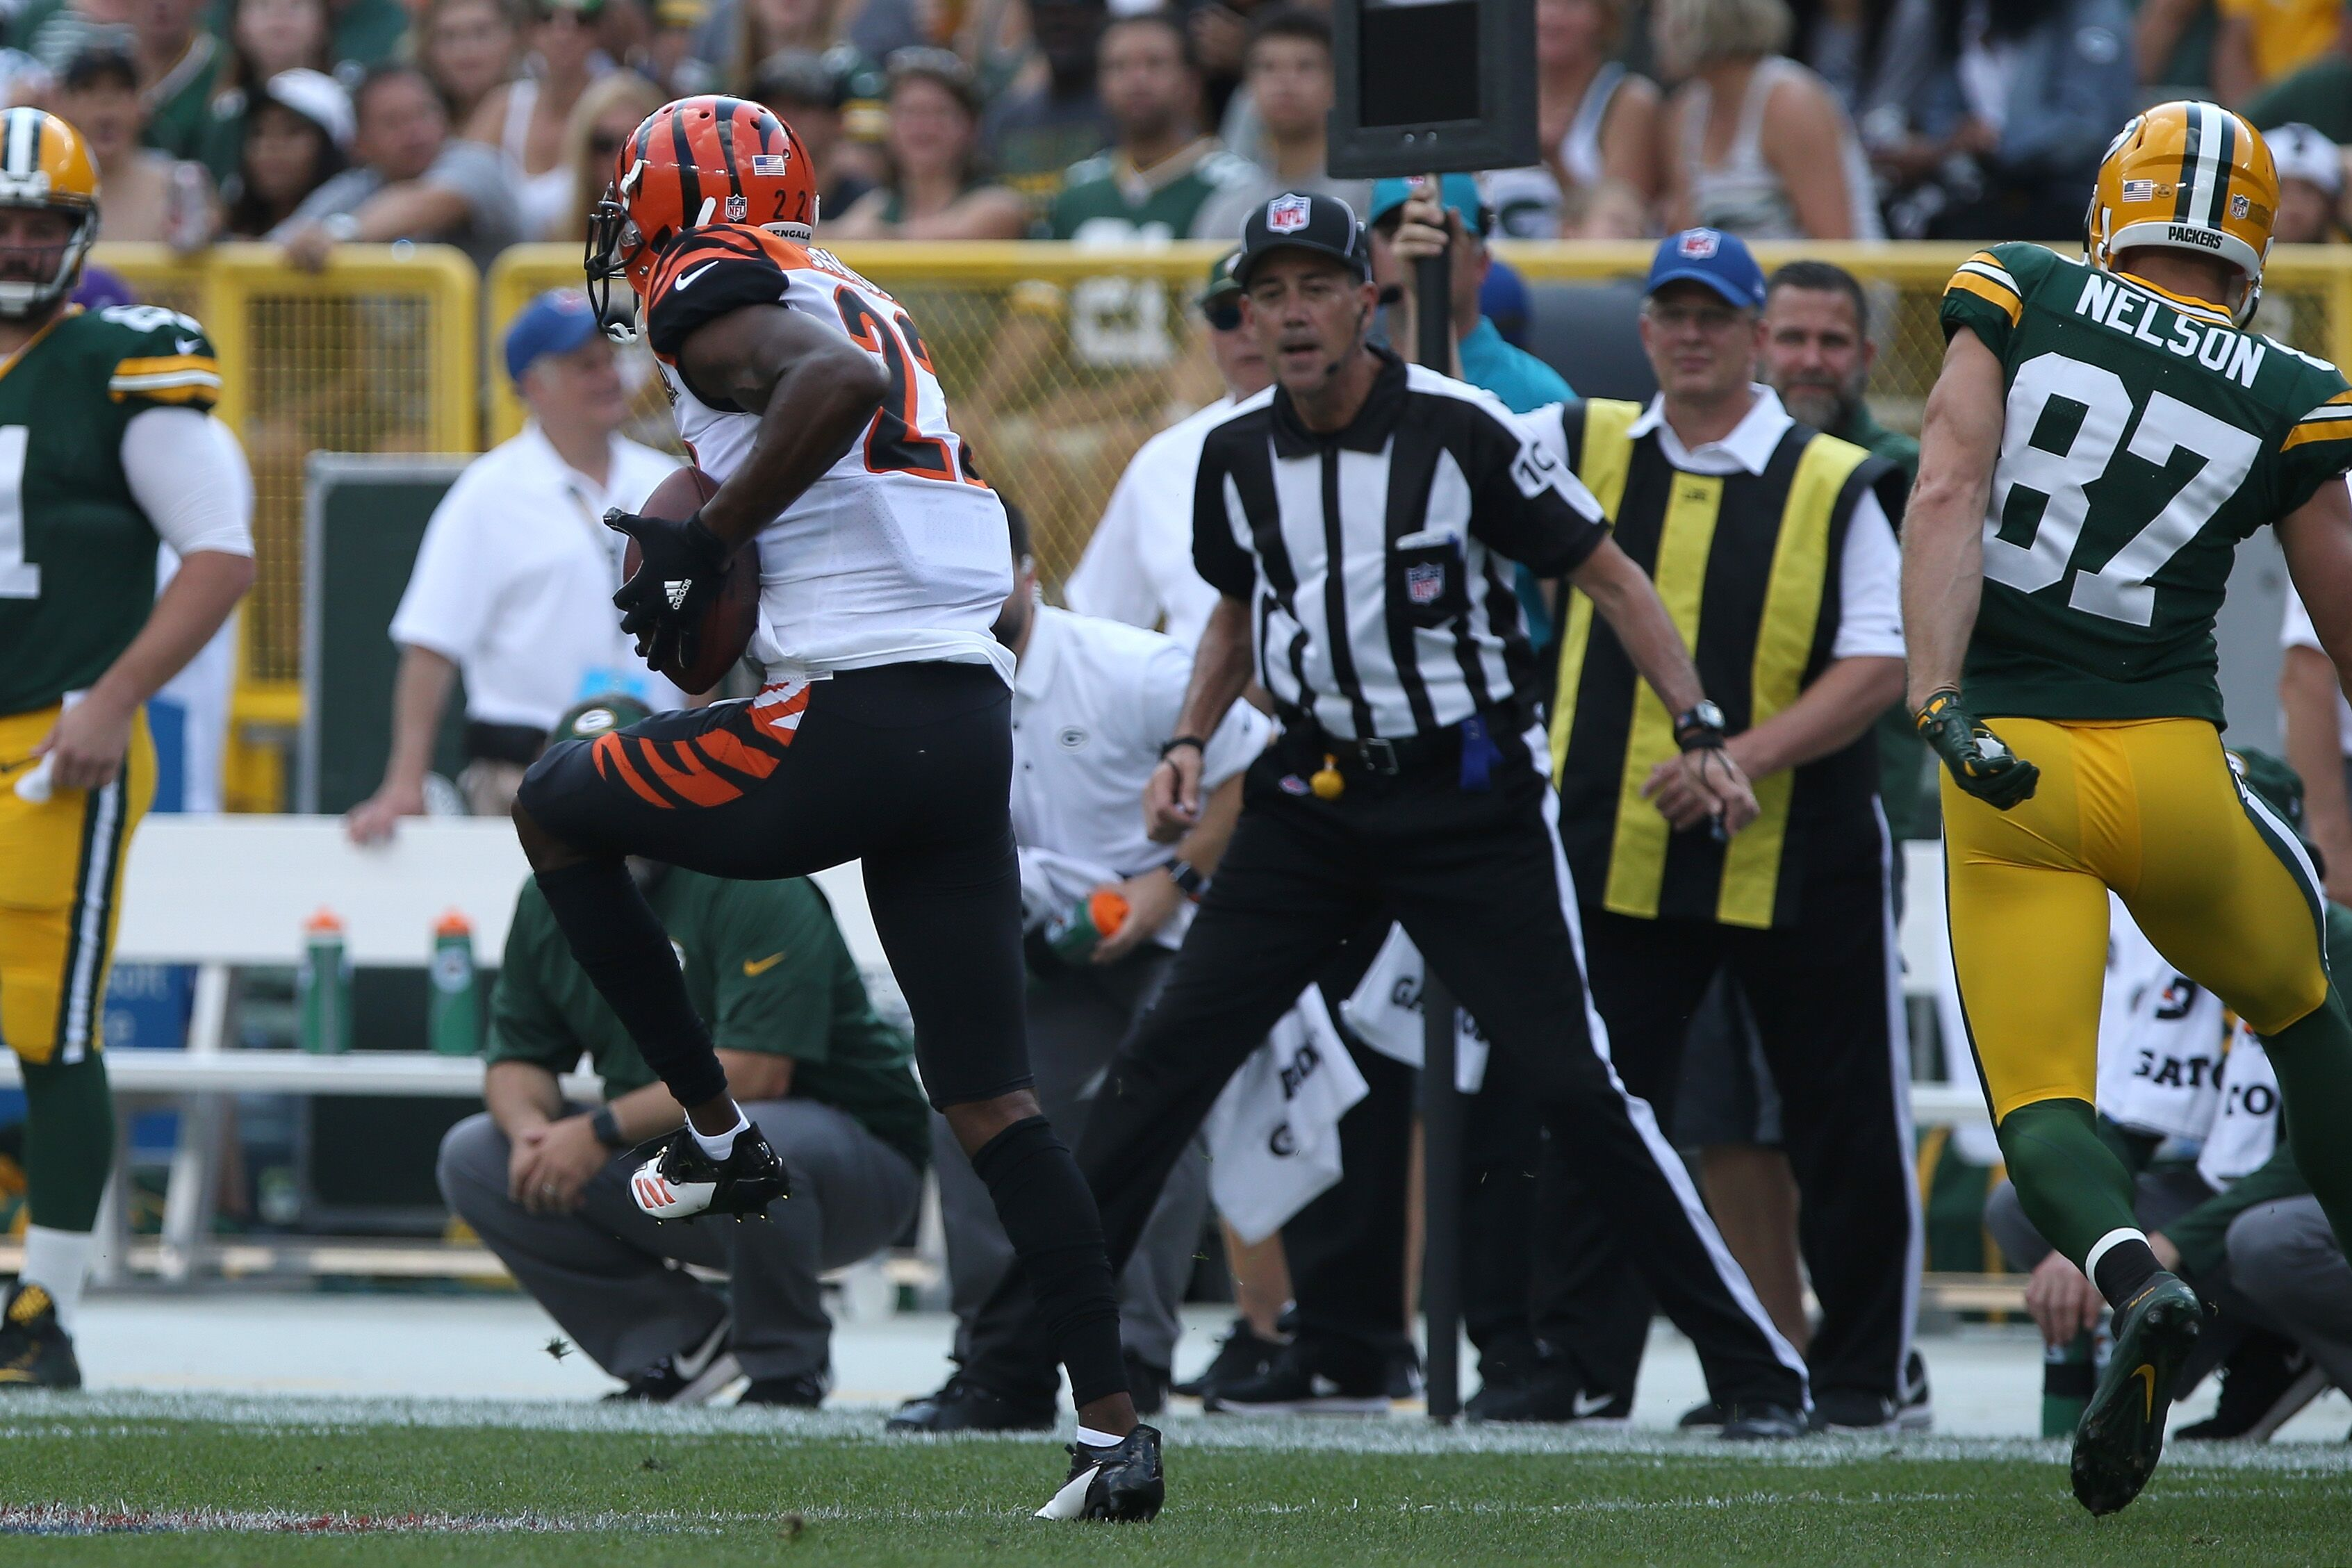 853182686-cincinnati-bengals-vs-green-bay-packers.jpg